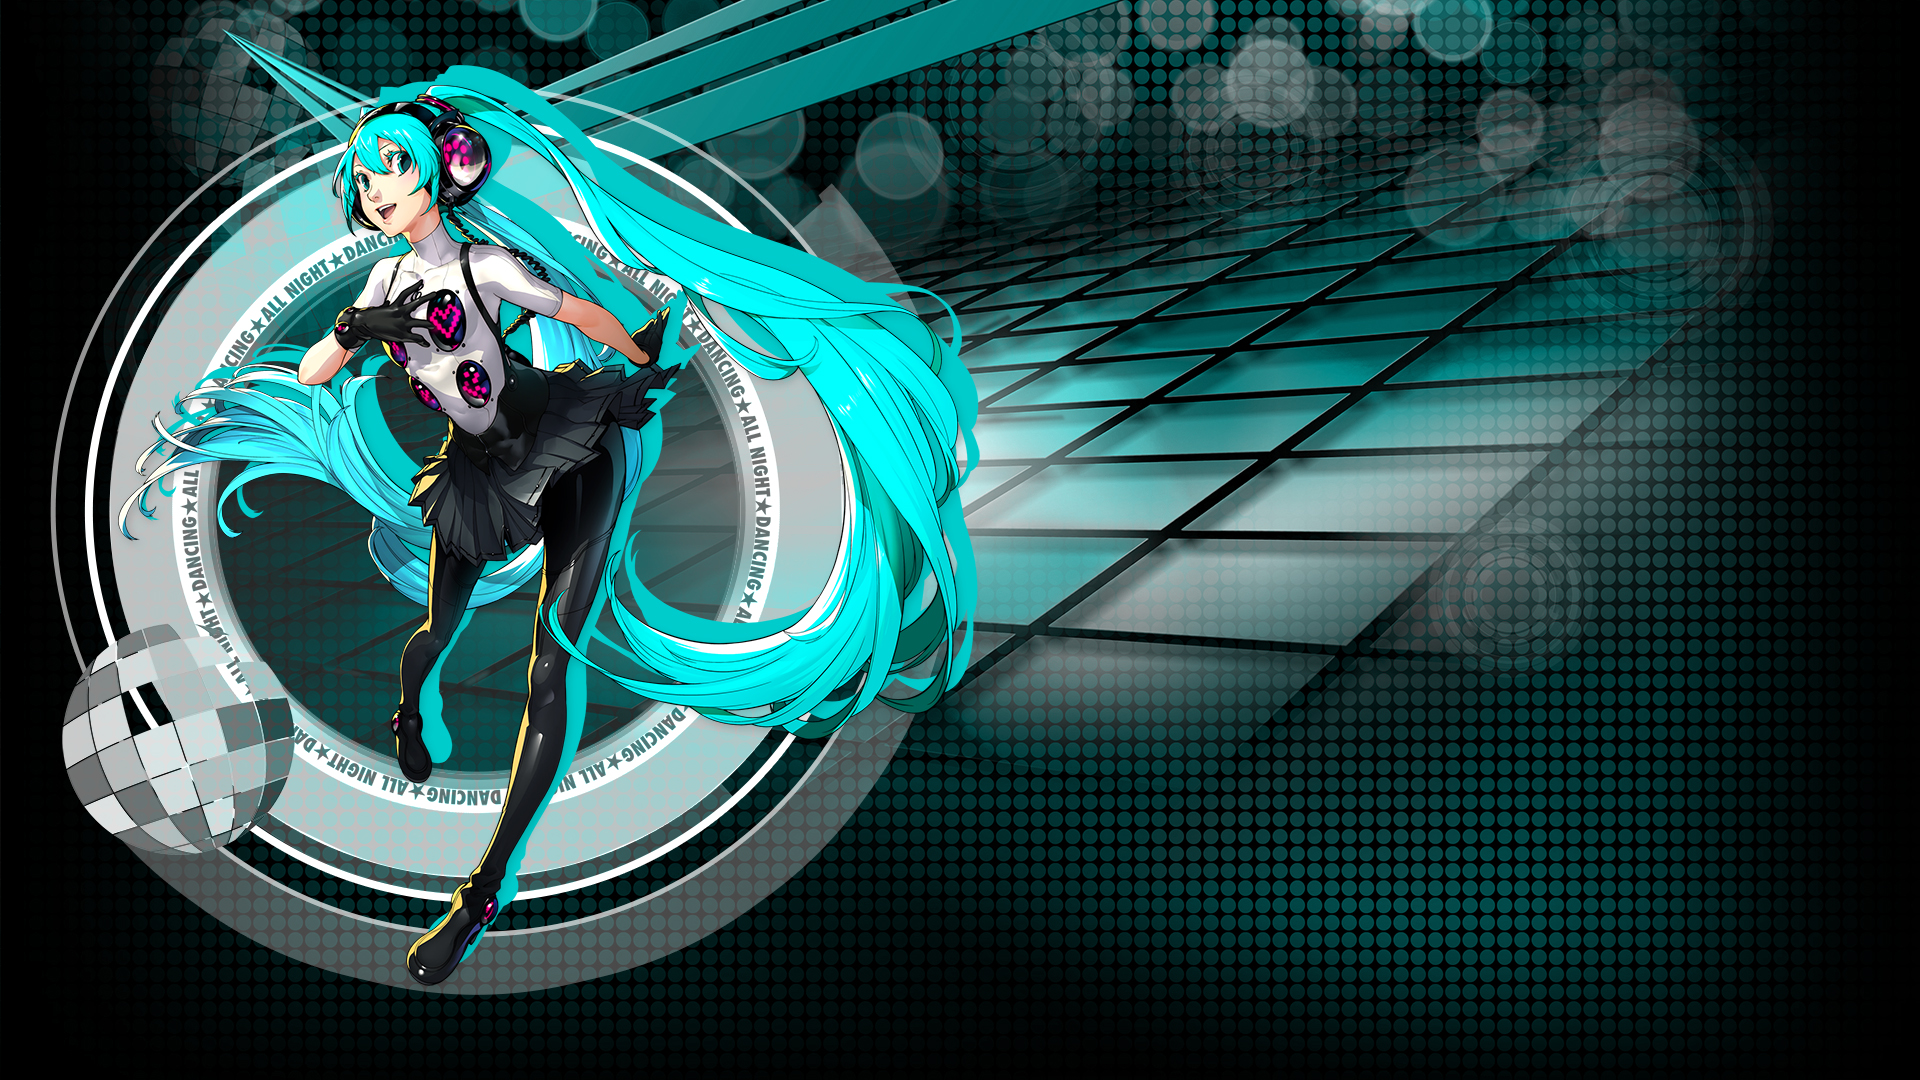 Persona 4 Dancing All Night Hatsune Miku Hd Wallpaper